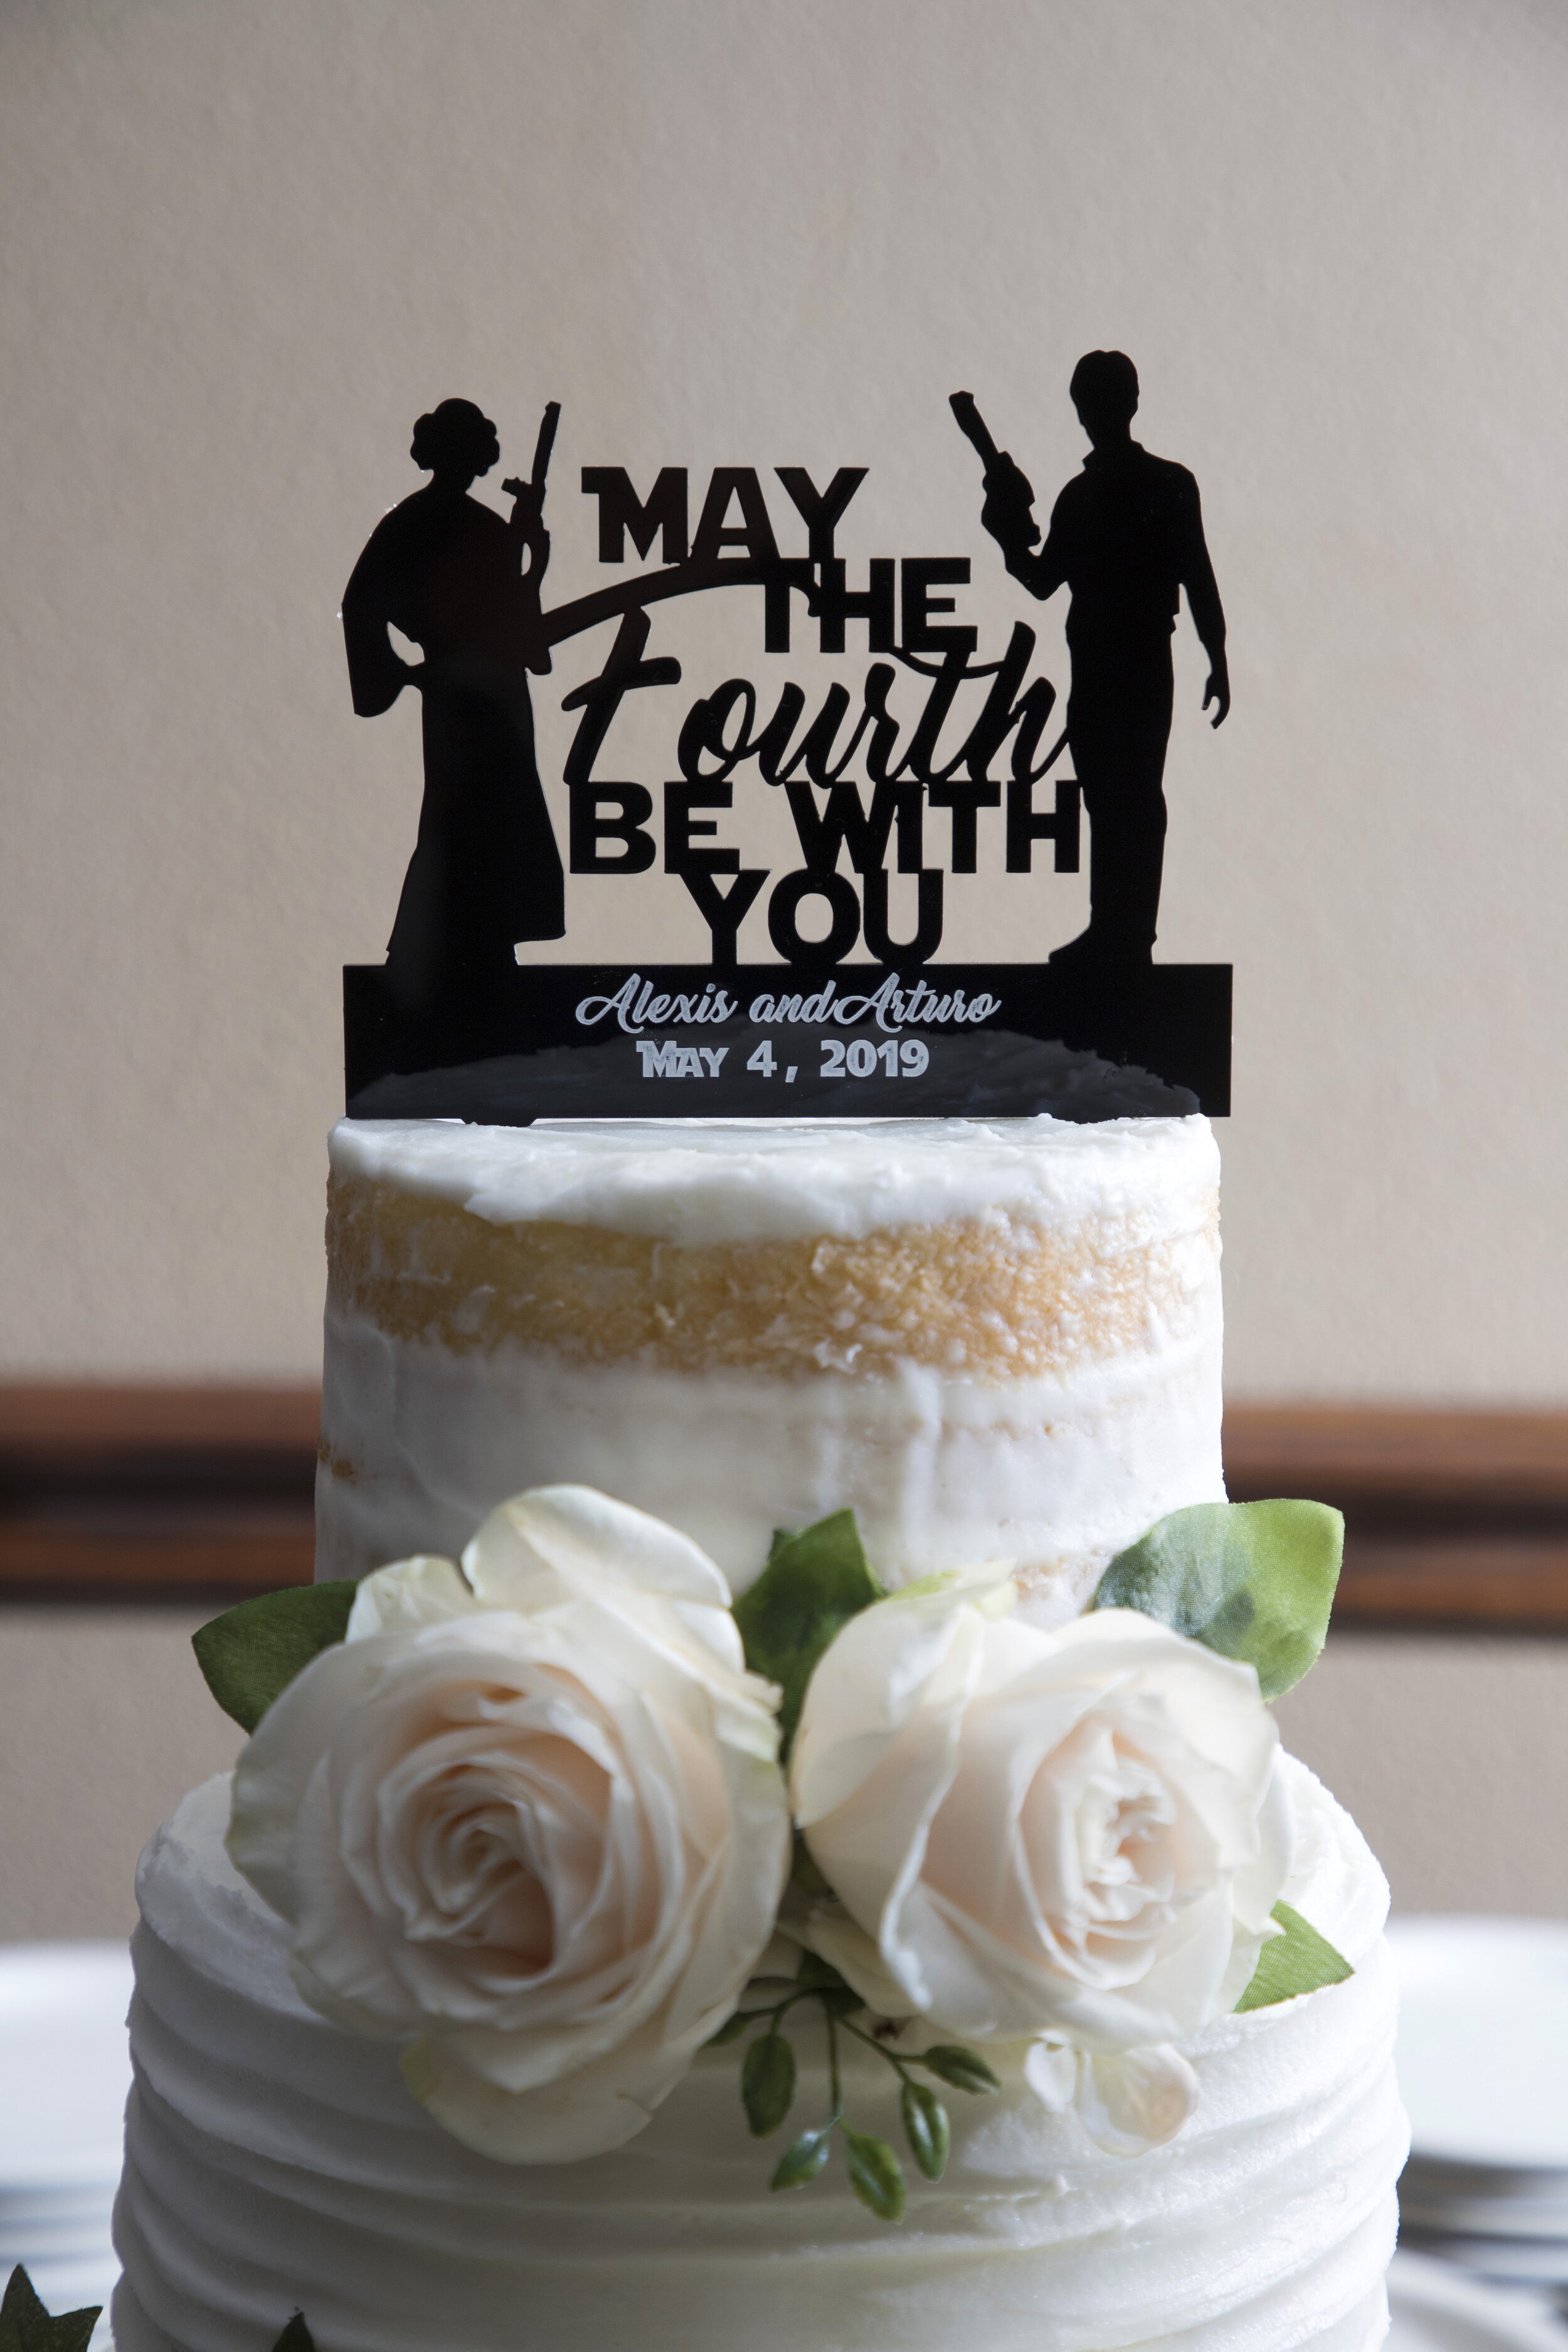 My May The 4th Be with You wedding of Alexis and Arturo was a lot of silly fun with a cool cake and a great outside venue in Fort Worth.